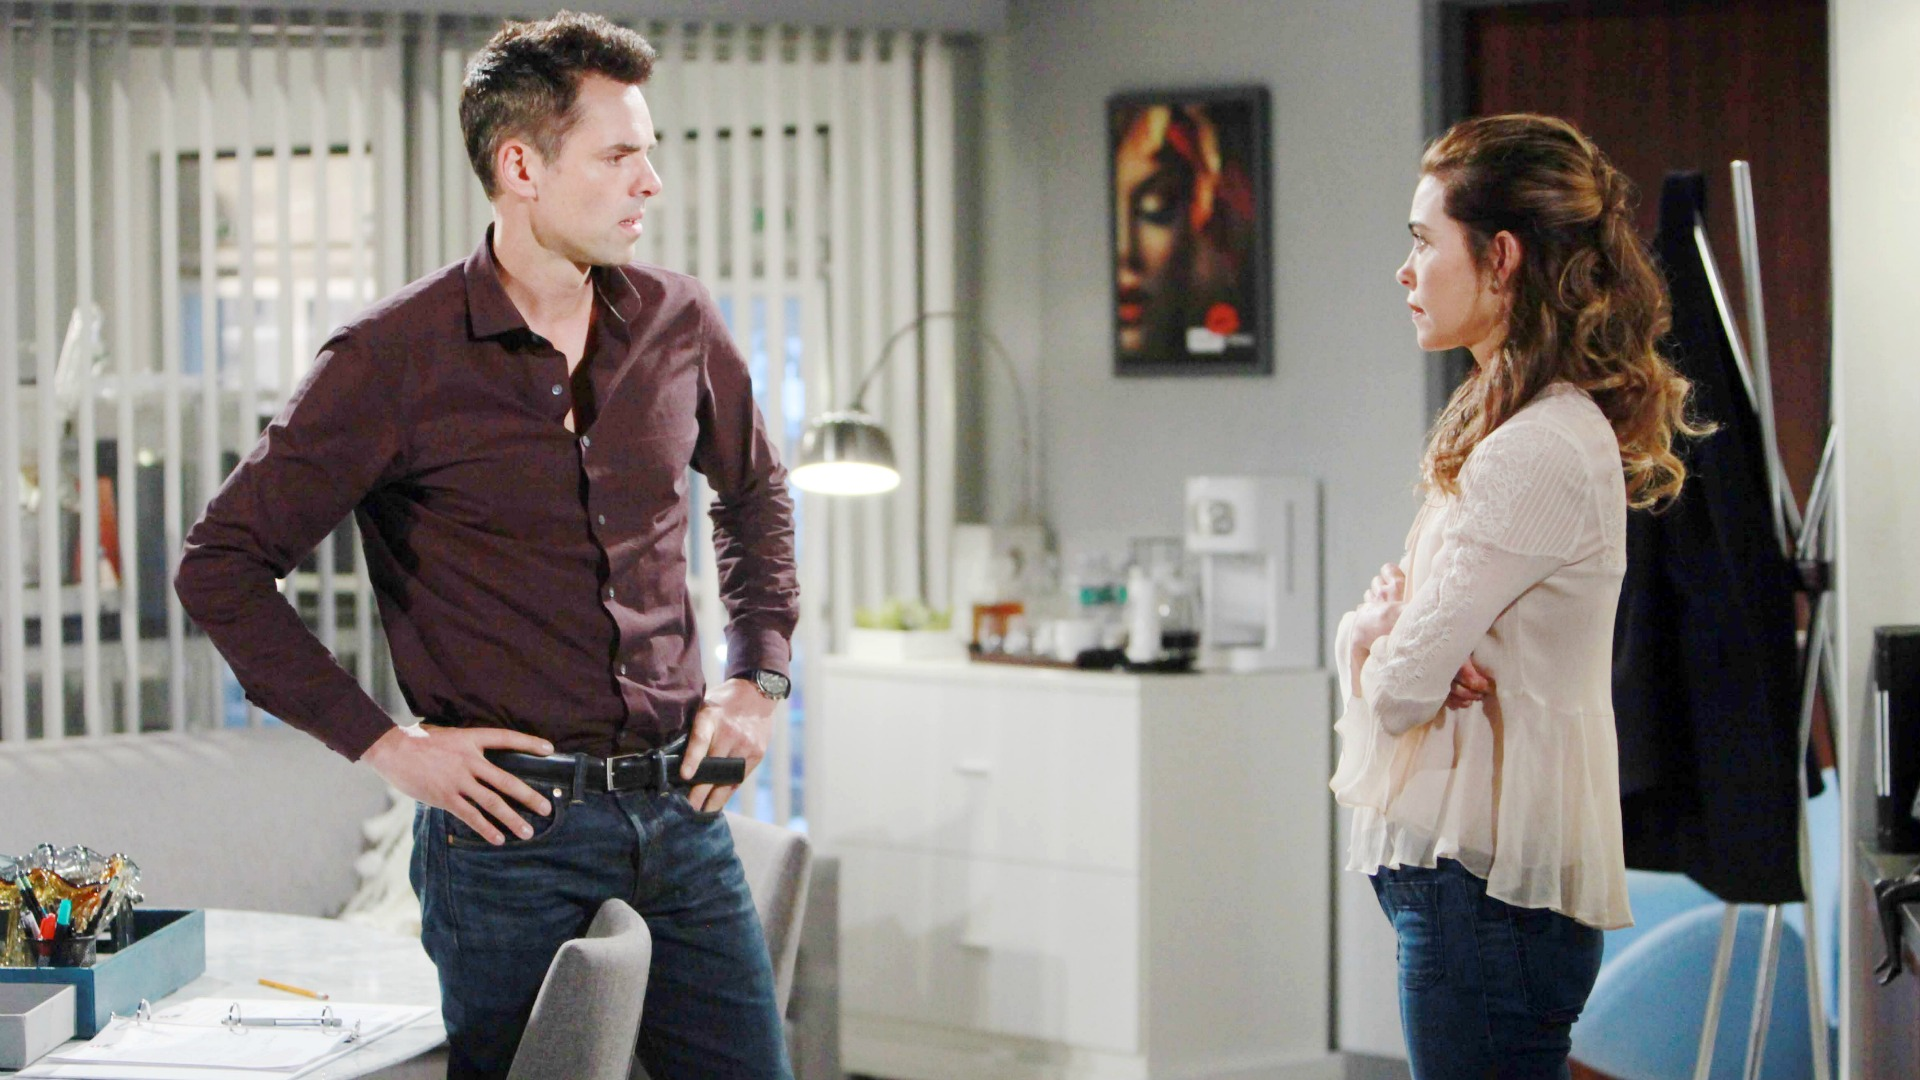 Billy struggles with telling Victoria the truth.